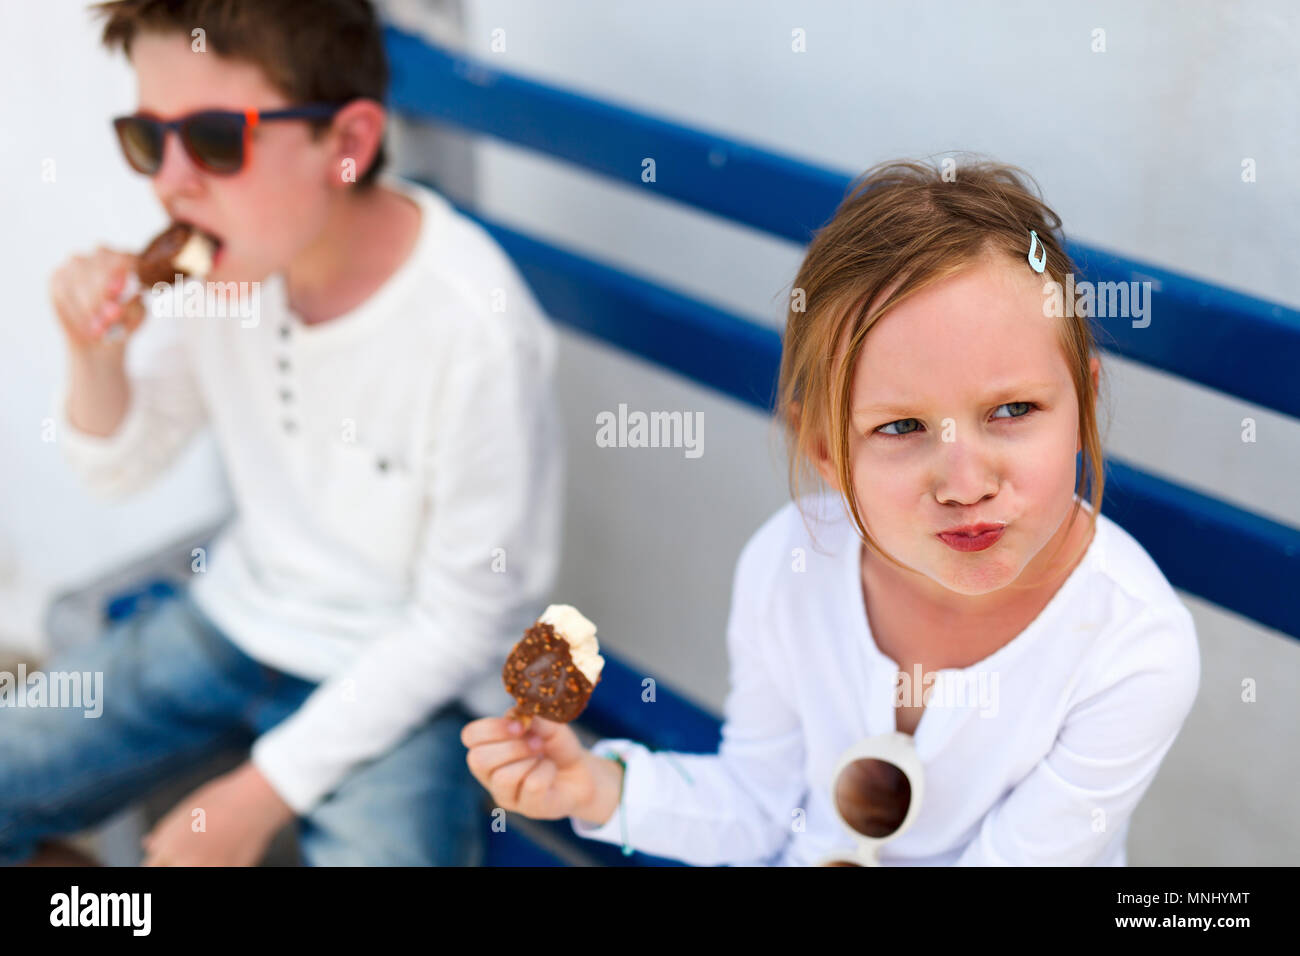 Two adorable kids eating ice cream outdoors on a hot summer day - Stock Image